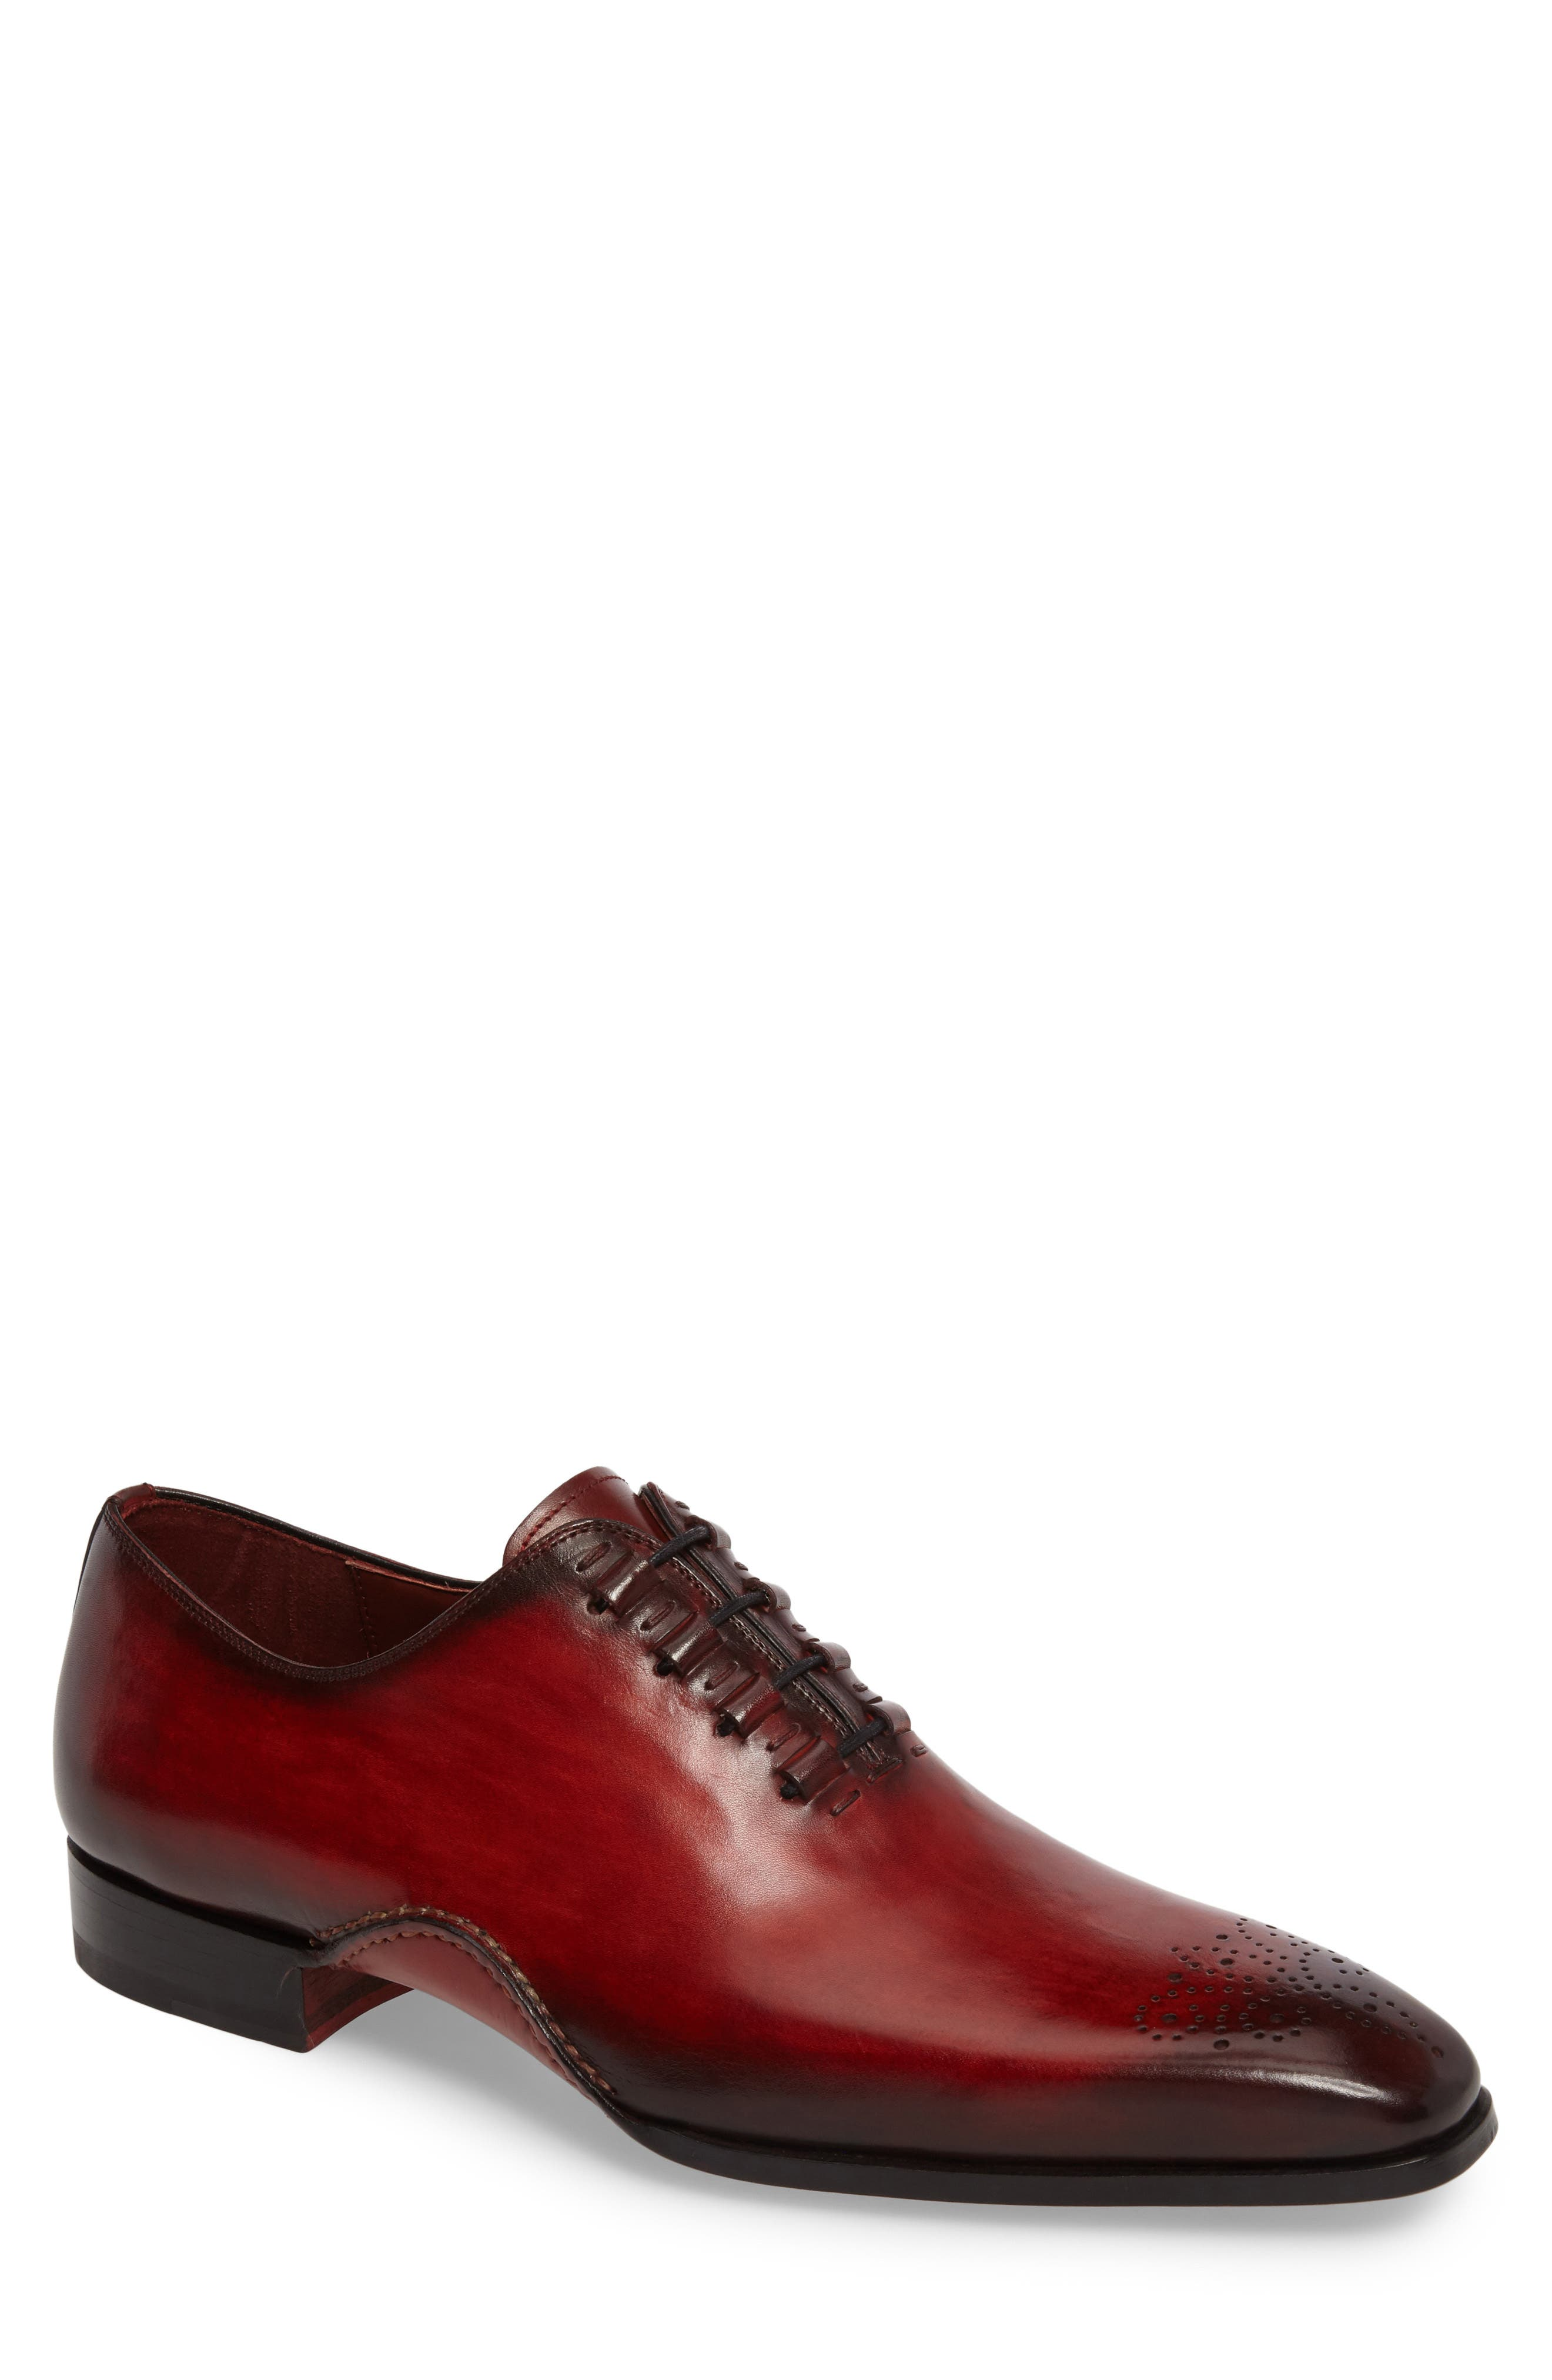 Josue Wholecut Oxford,                             Main thumbnail 1, color,                             Red Leather